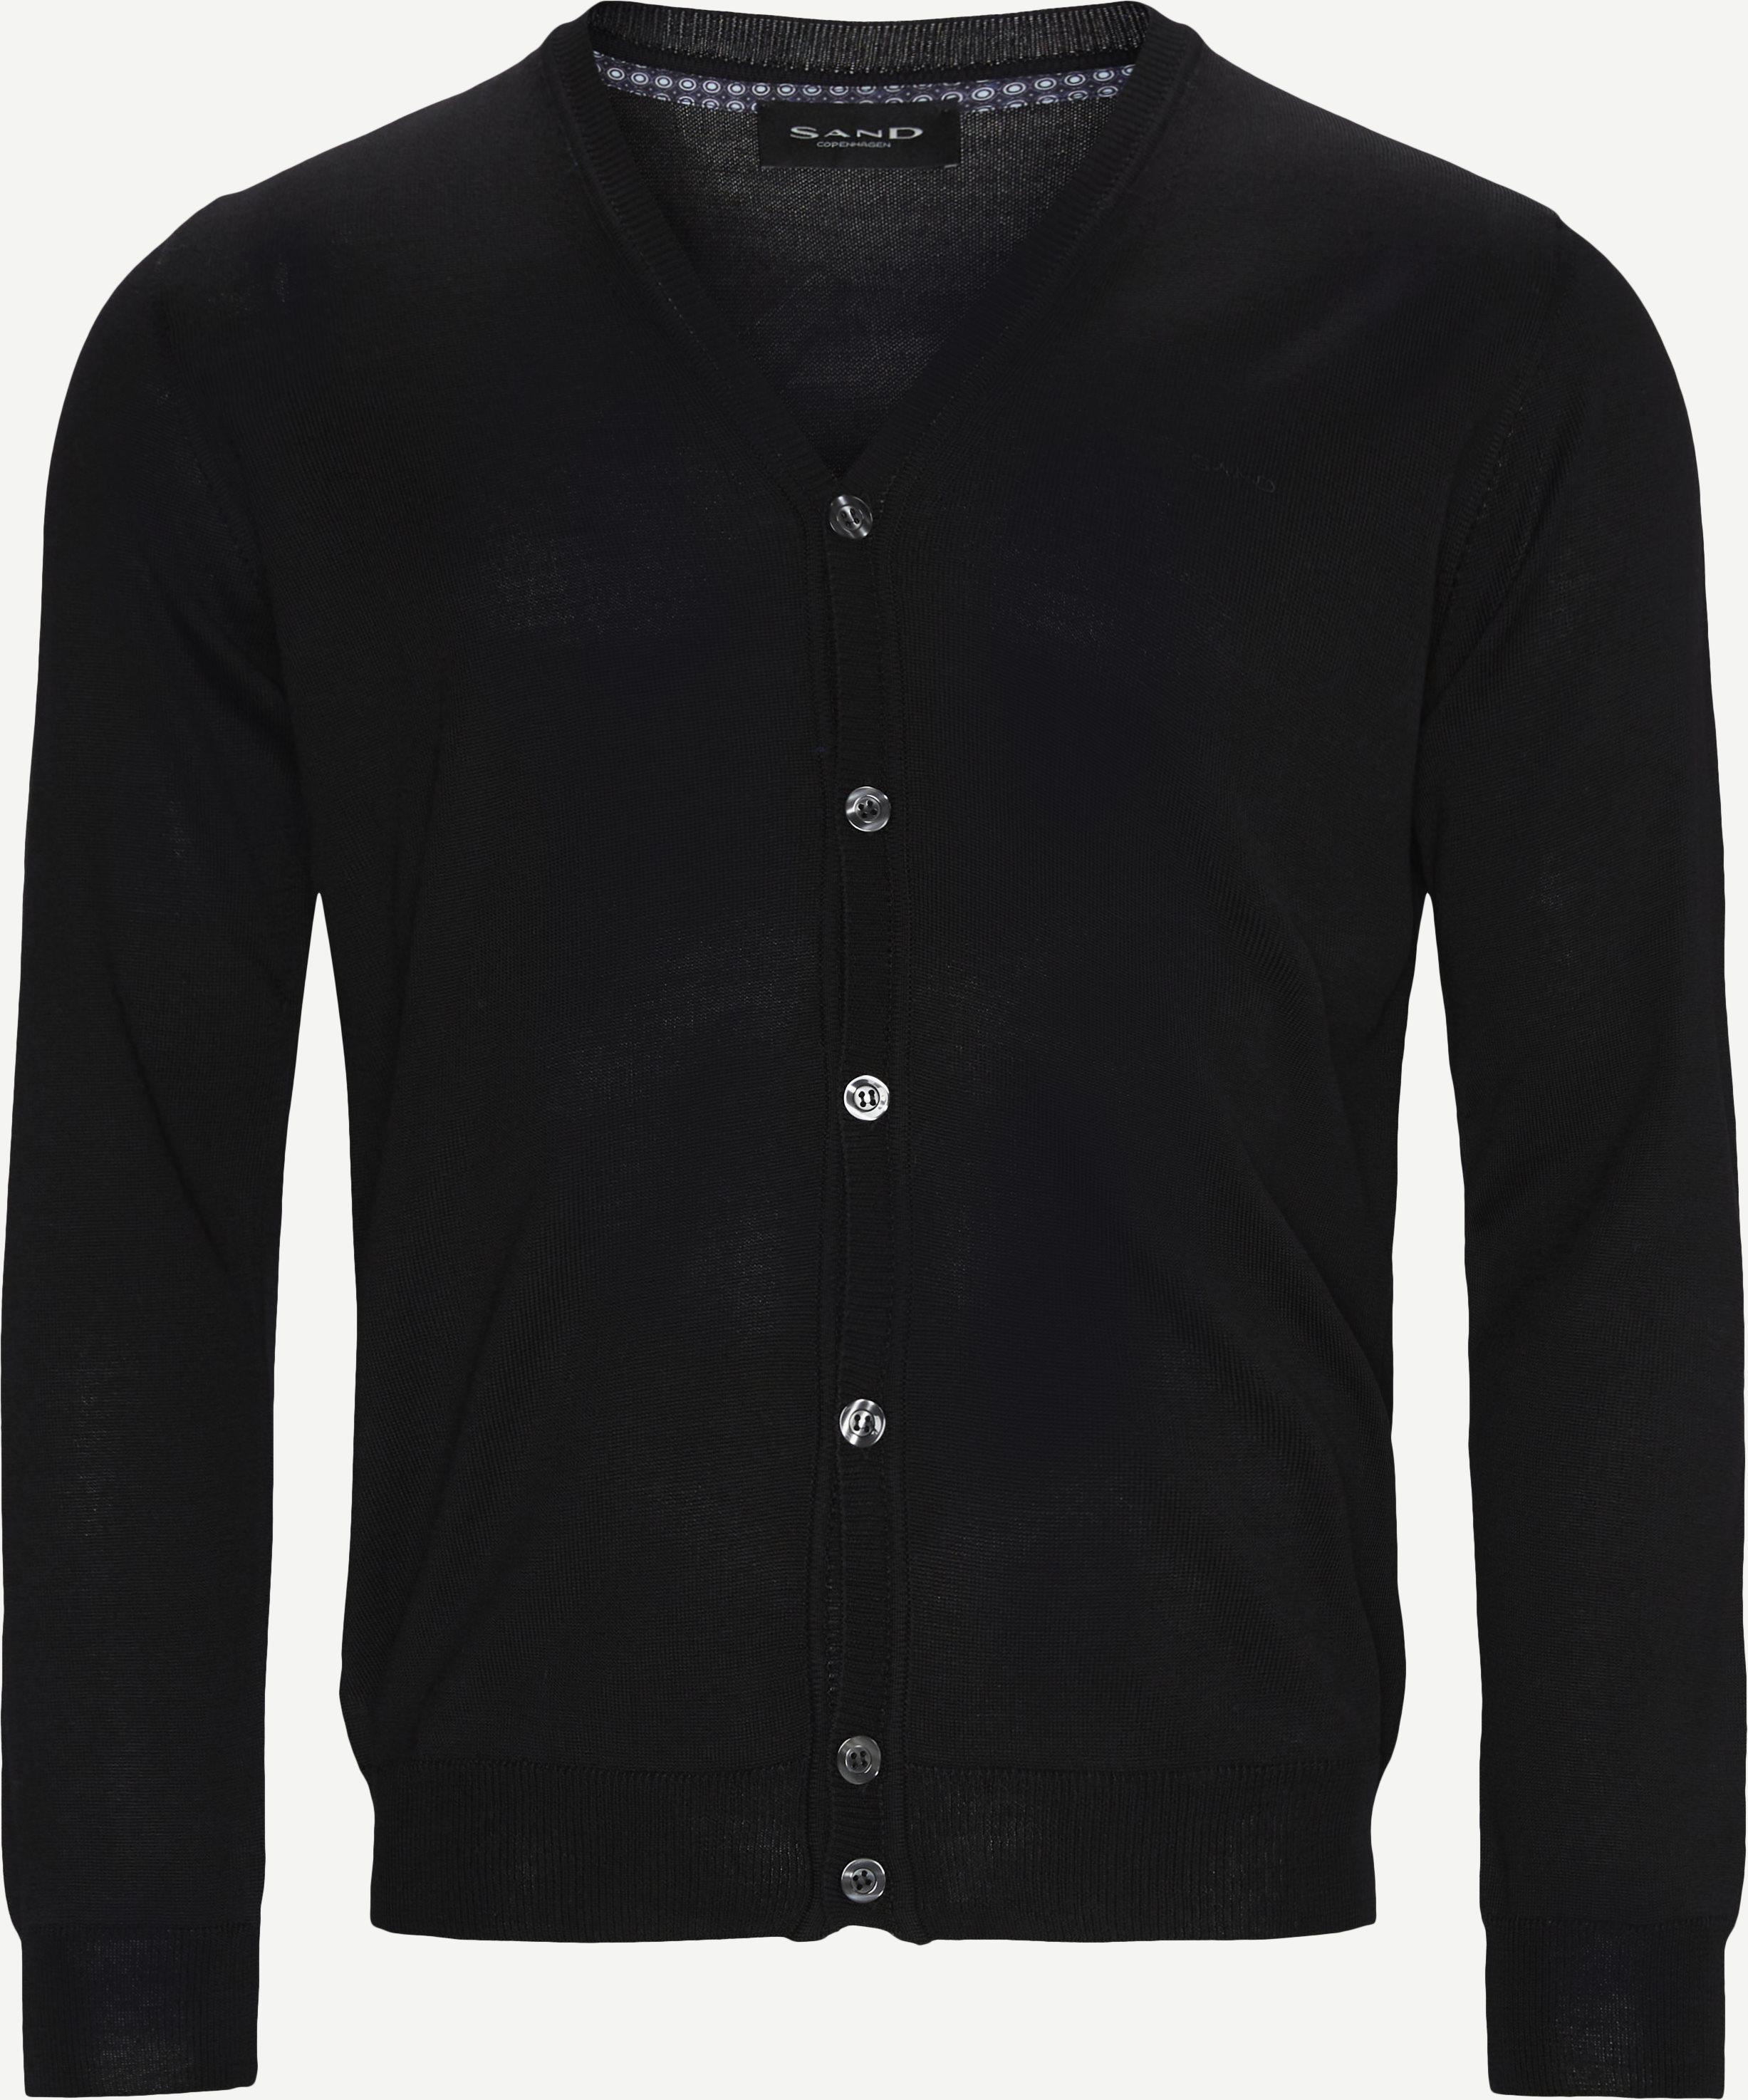 Merino Embr. Ice Cardigan - Knitwear - Regular - Black